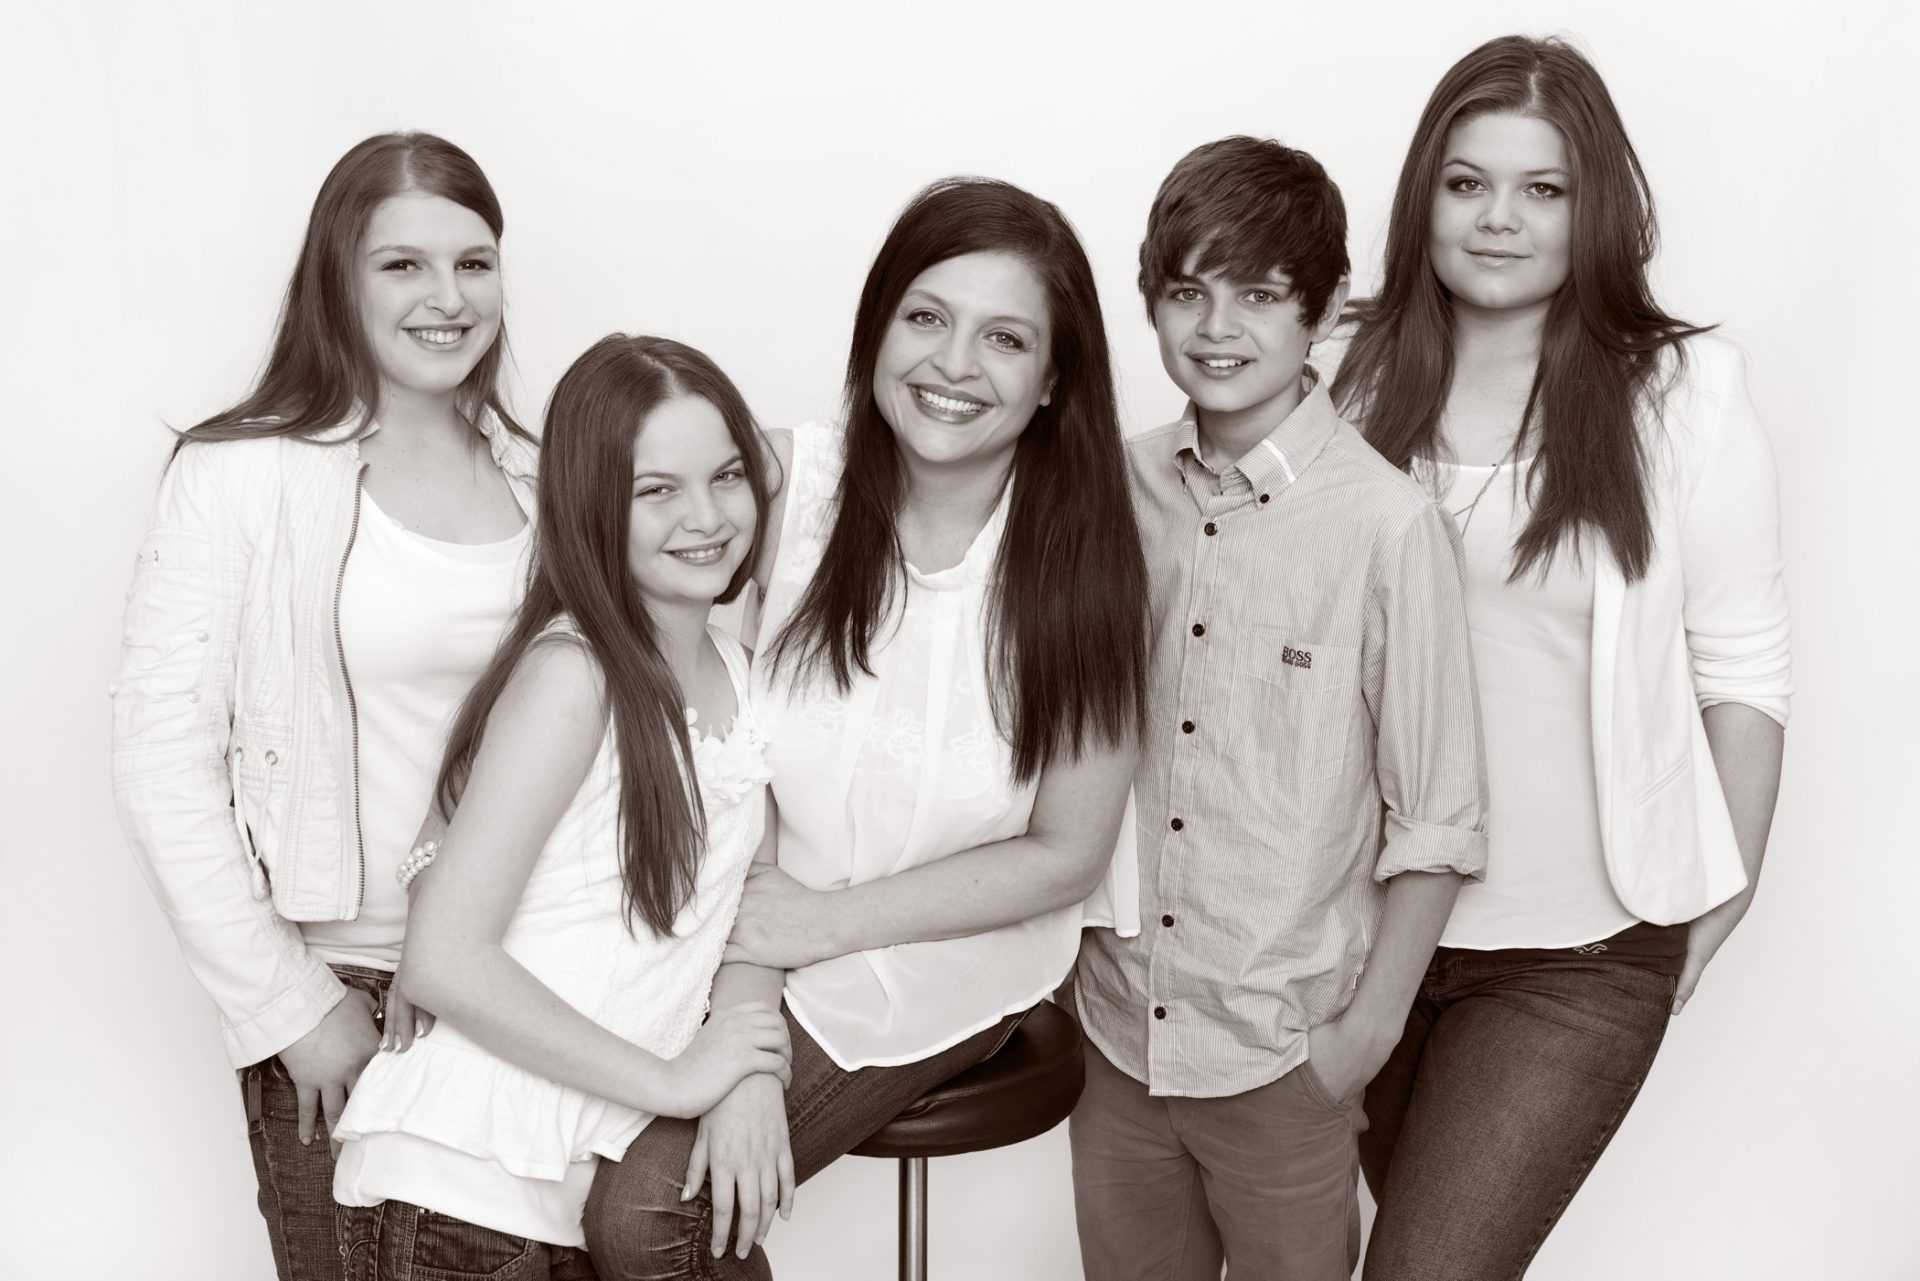 Mothers Day Gift: Professional Family Photo of mother and four children black and white in photography studio